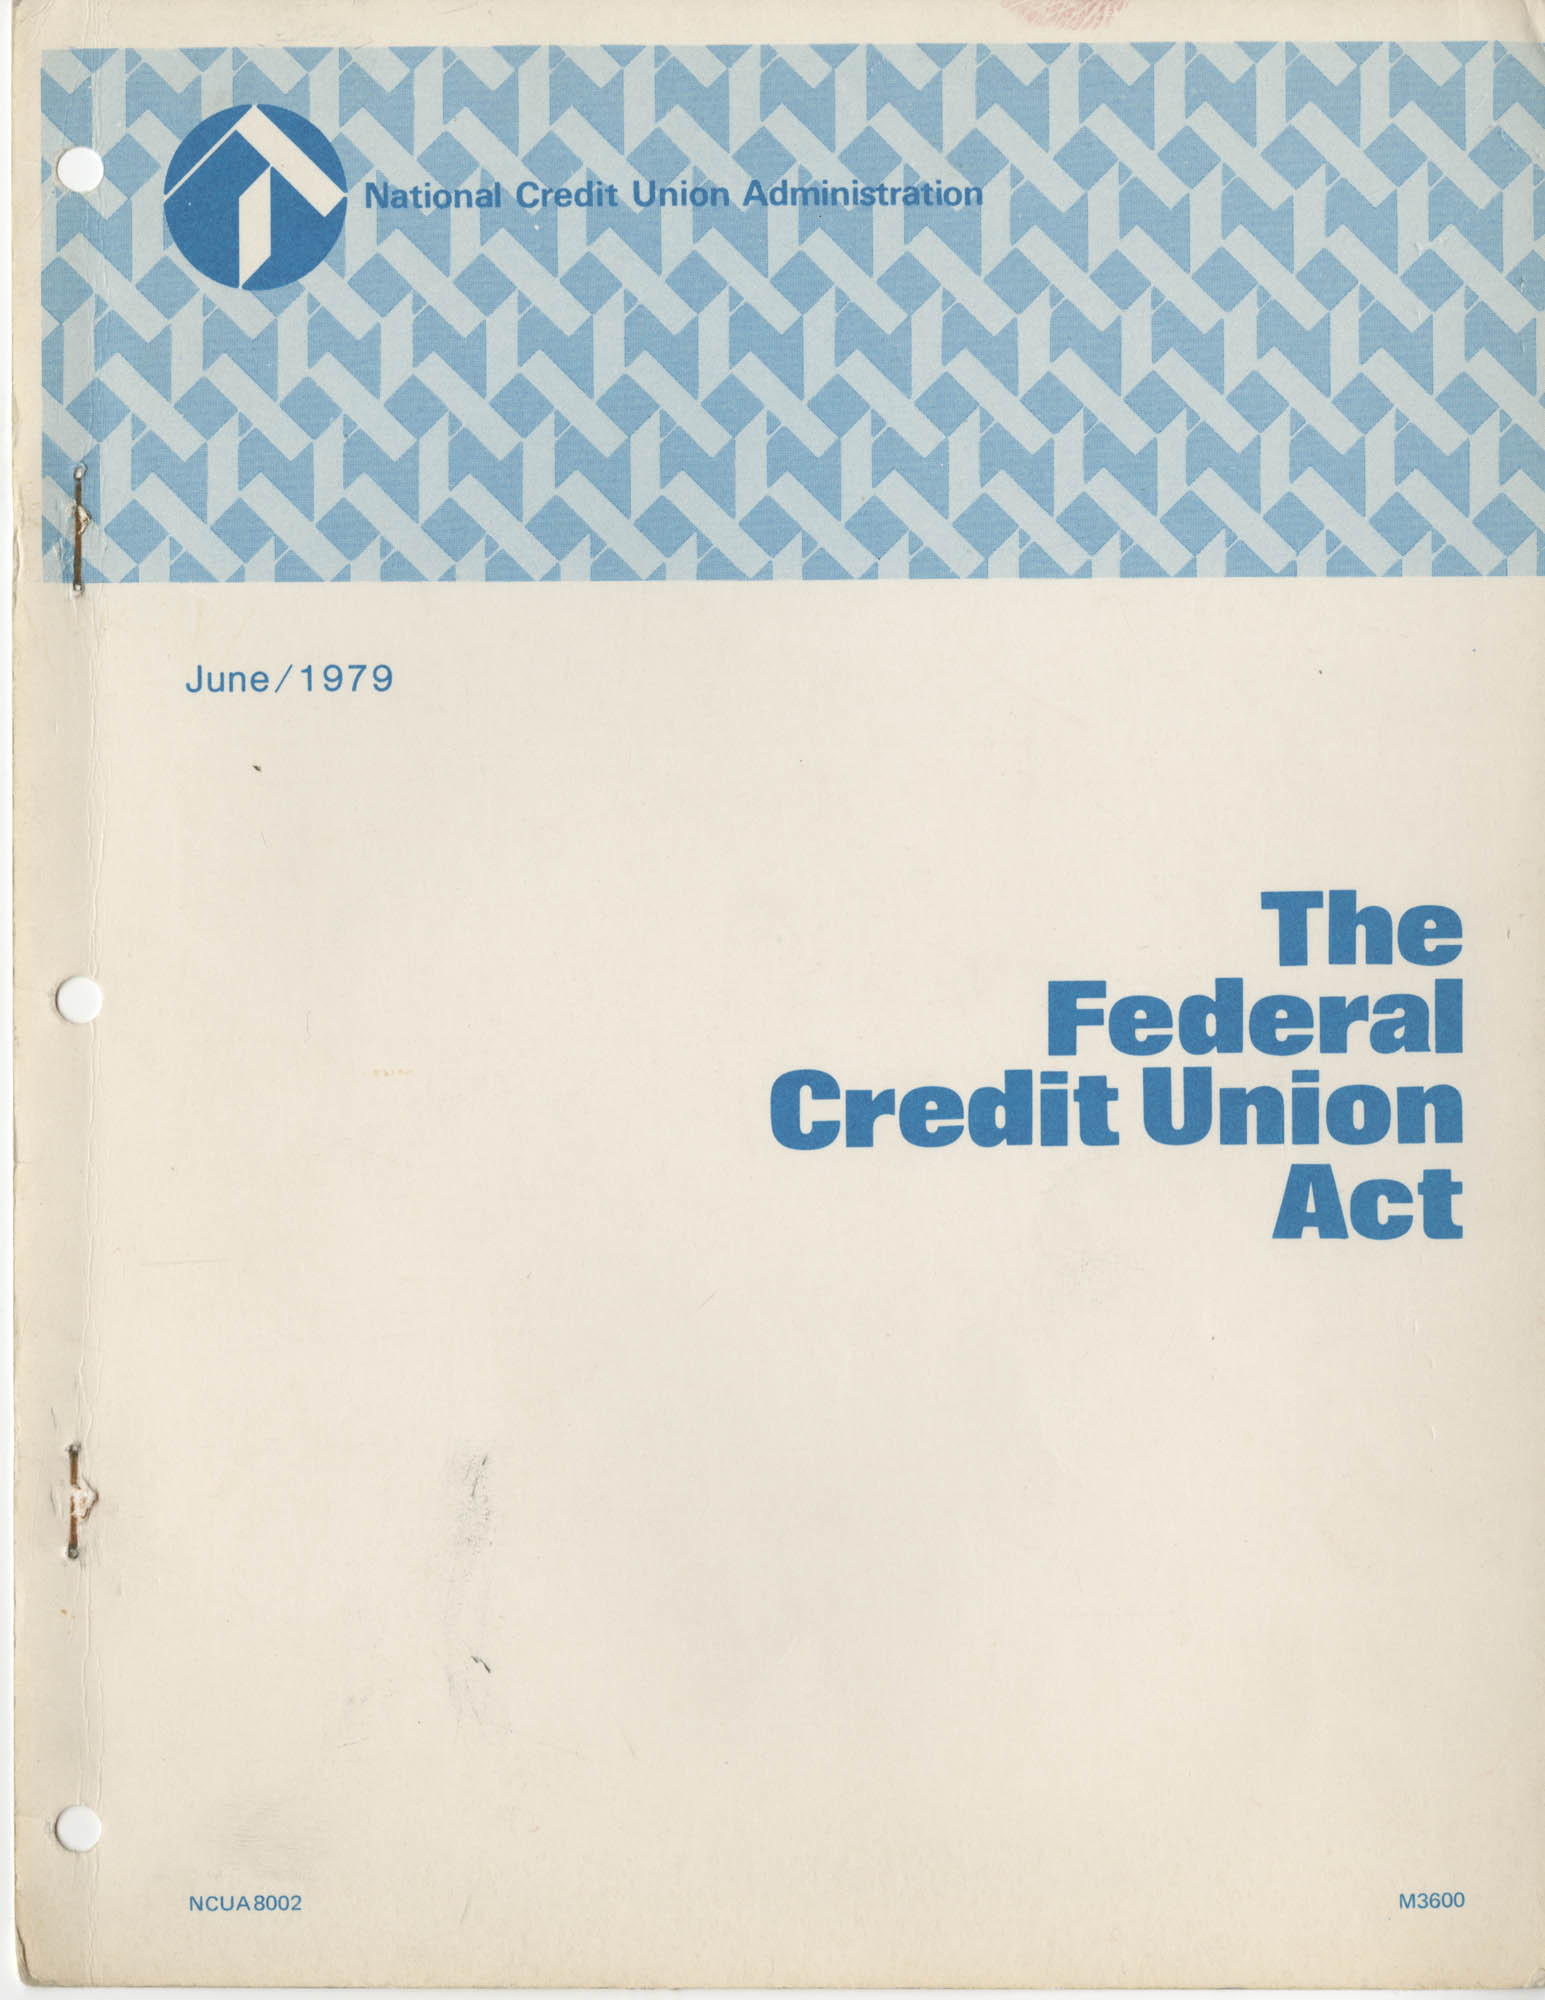 The Federal Credit Union Act, June 1979